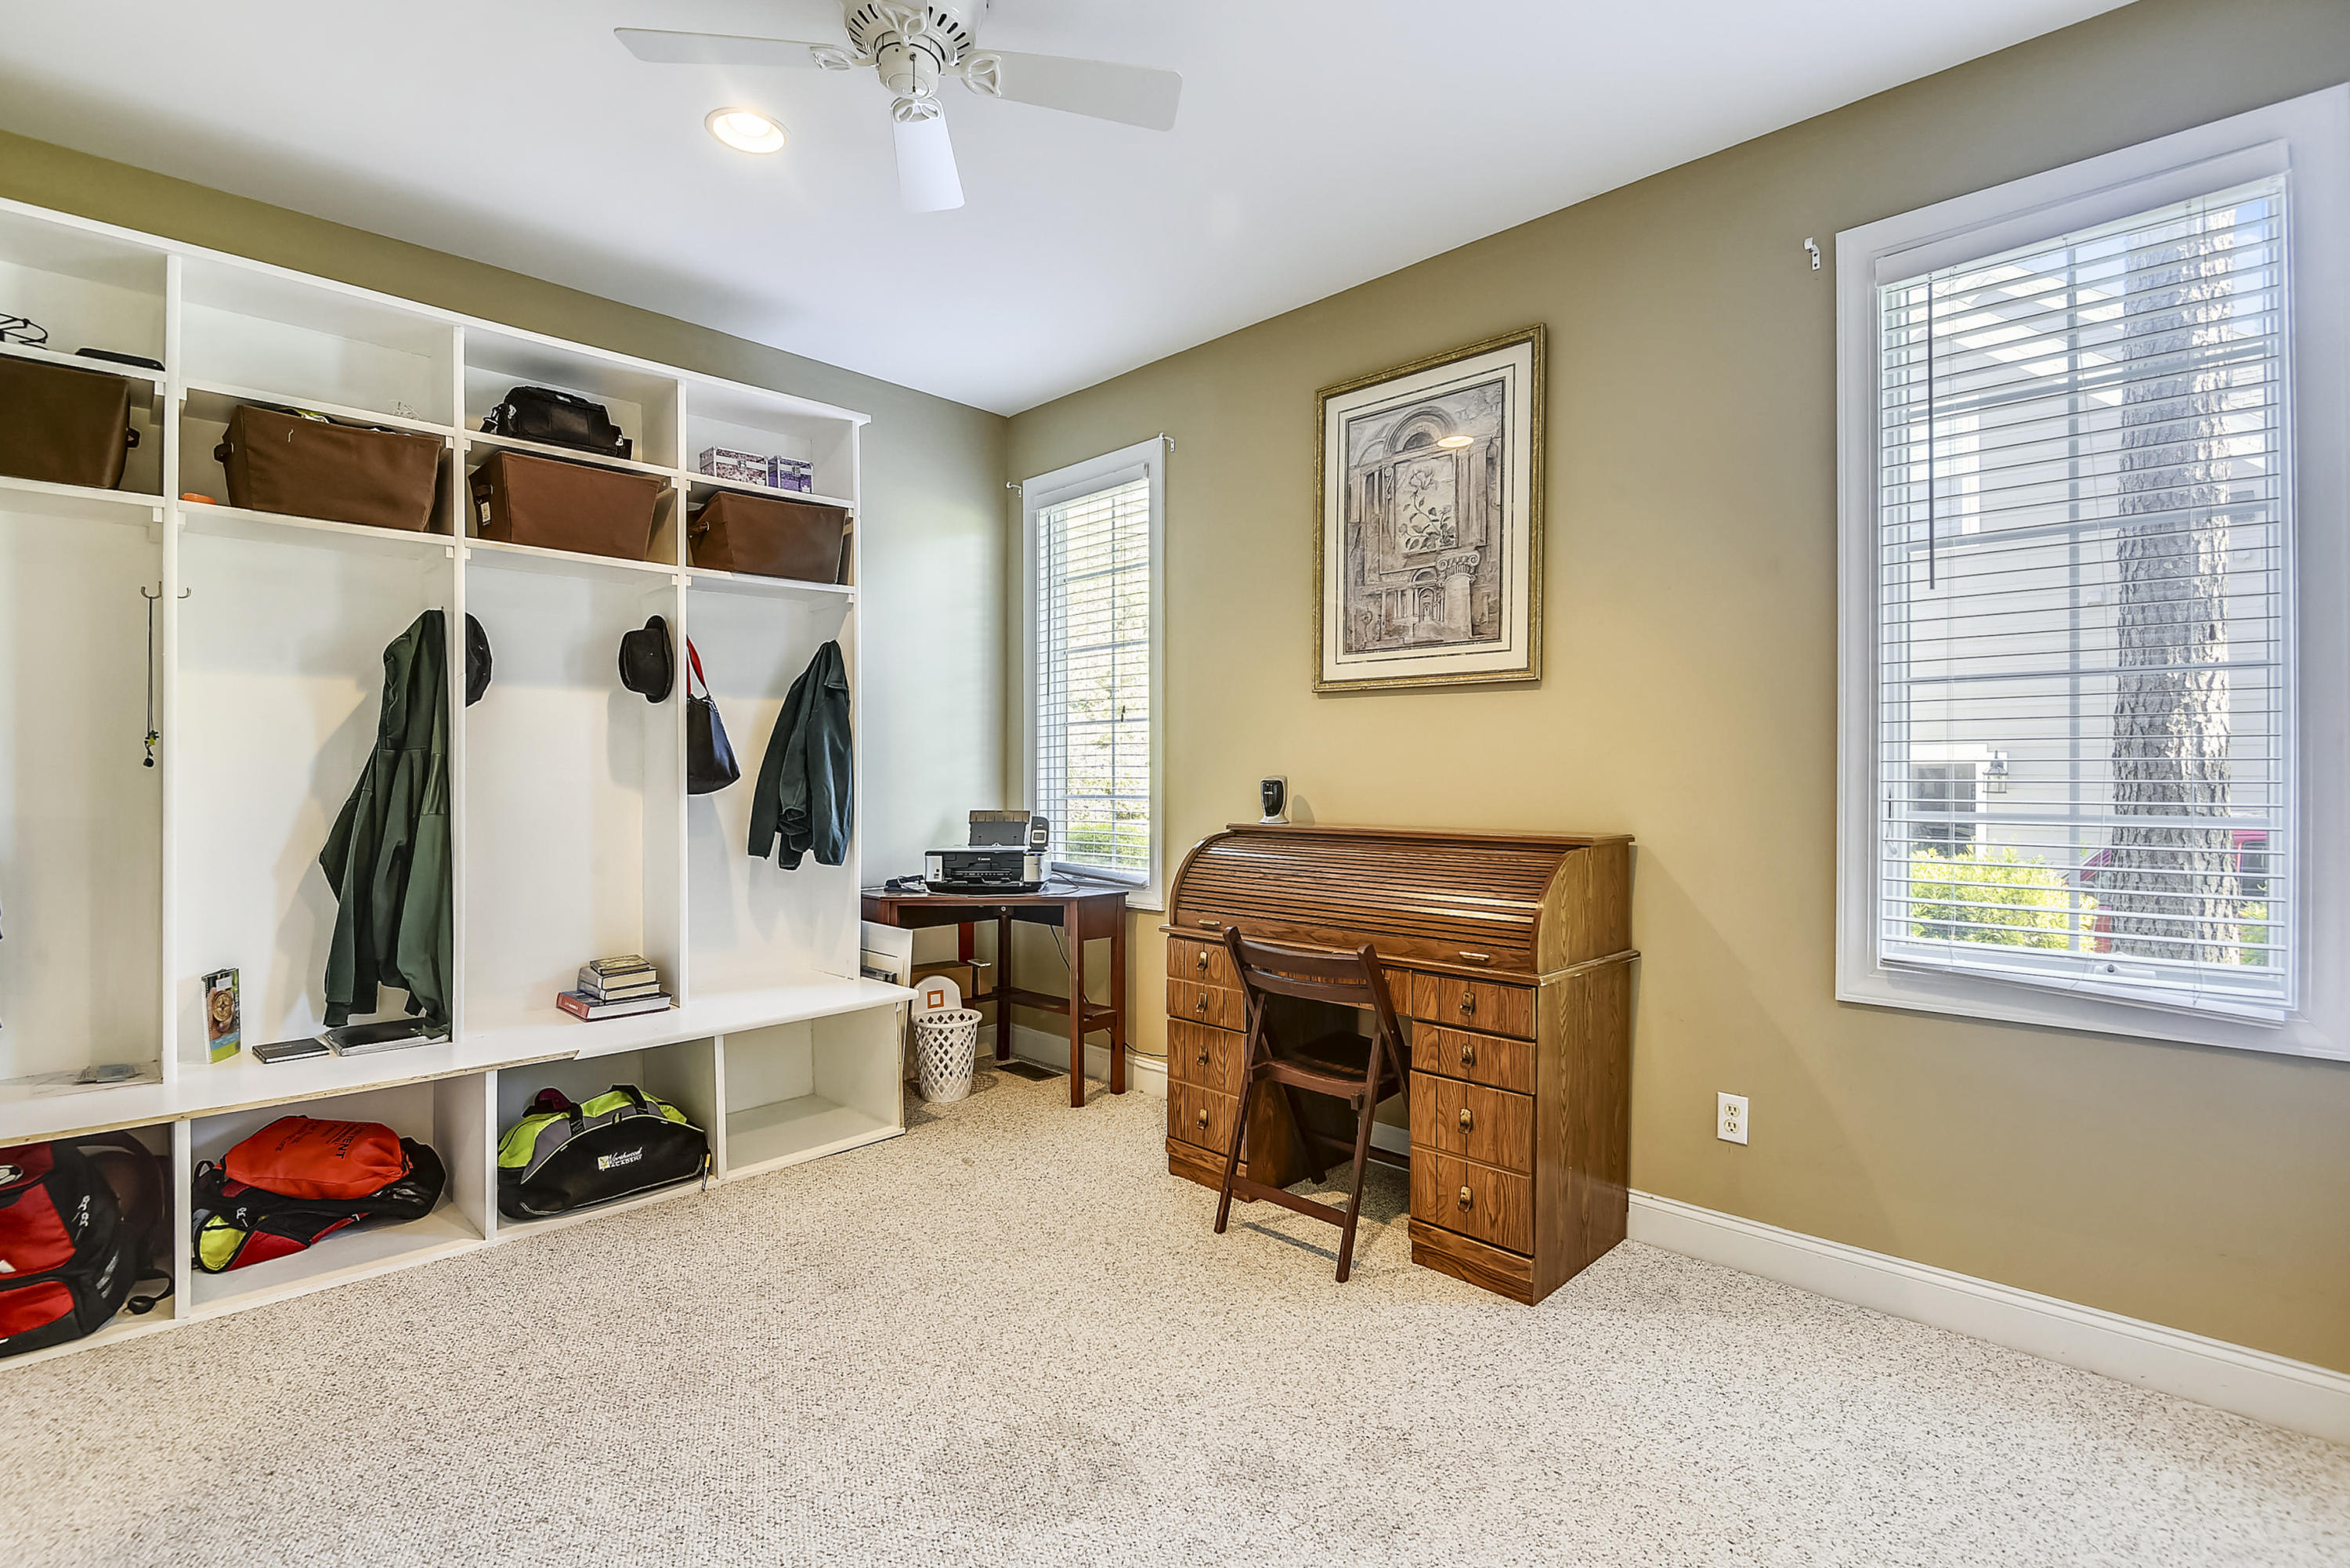 Coosaw Creek Country Club Homes For Sale - 8855 Fairway Woods, North Charleston, SC - 40